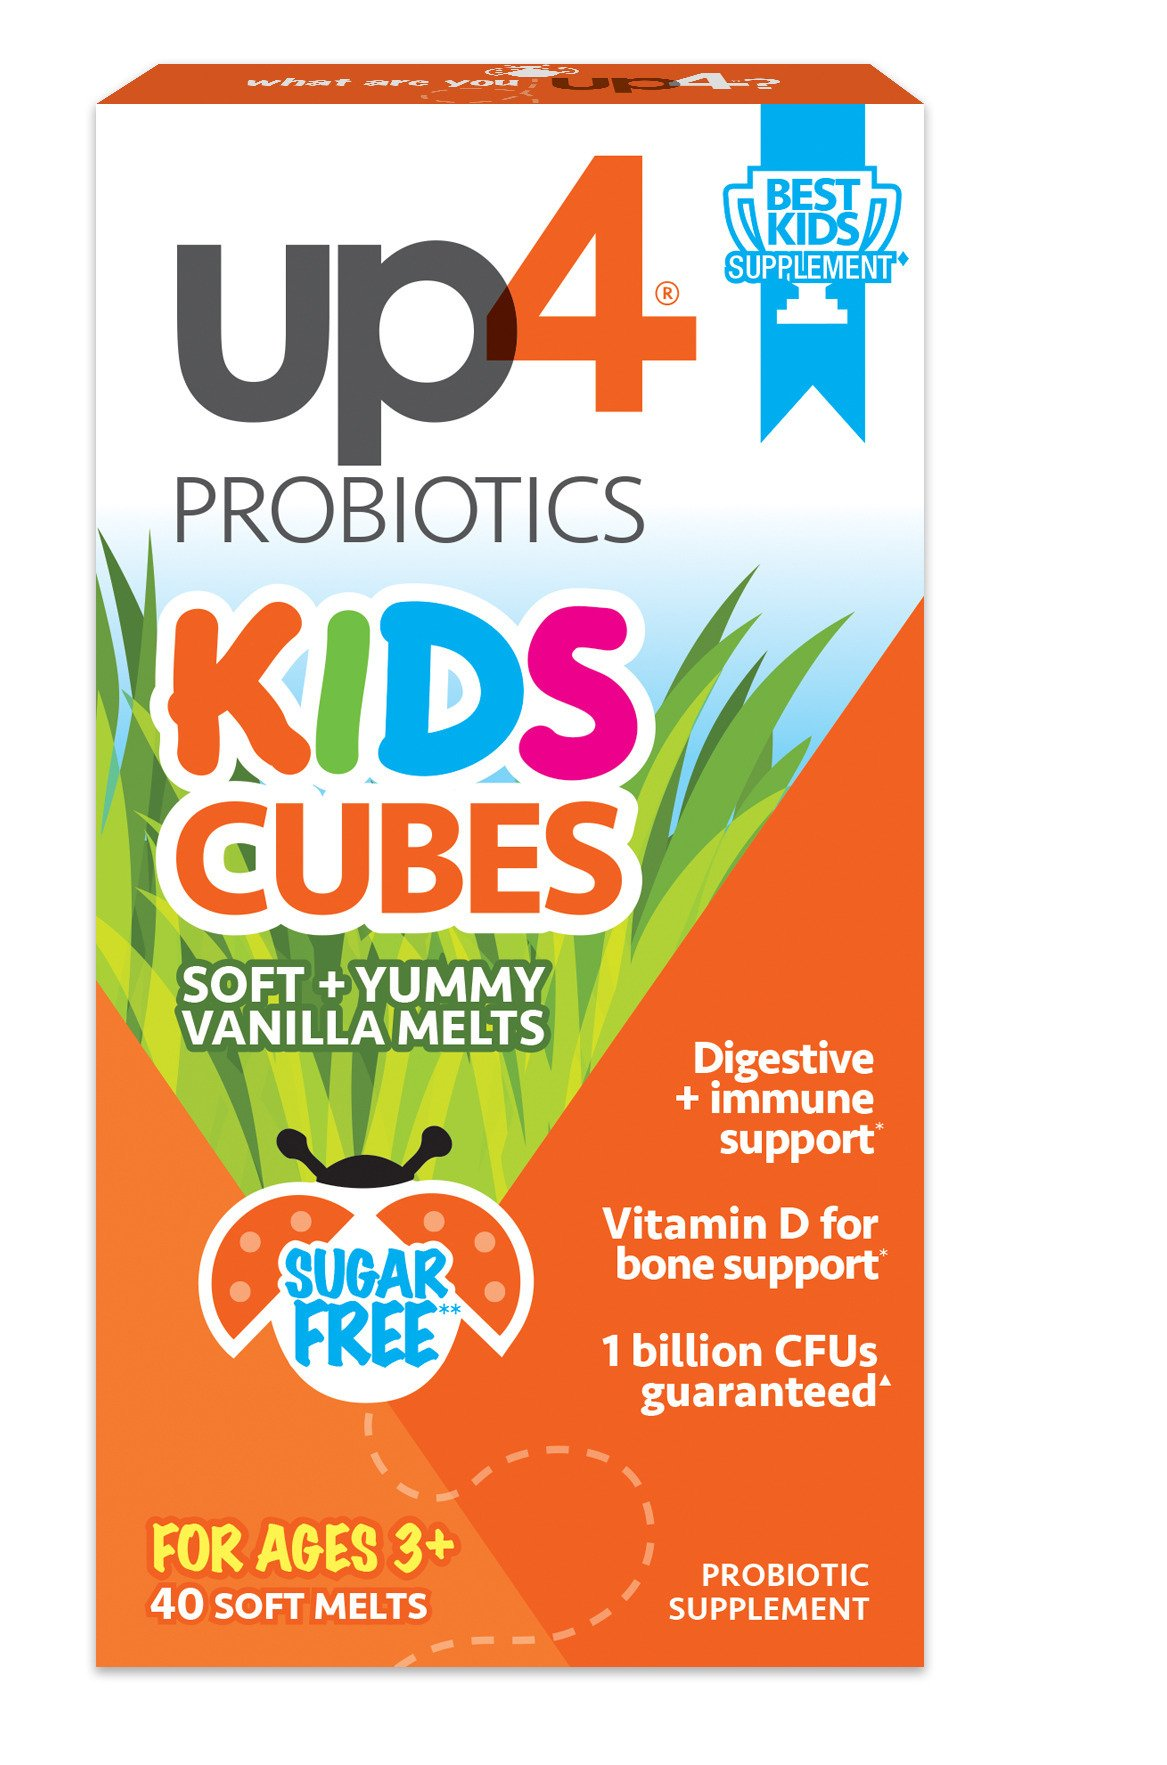 UP4 Kids Cubes Probiotic Supplement Digestive and Immune Support Vitamin D3 for Bone Support, 1 Billion CFUs, Soft & Creamy Vanilla, Gentle For Tiny Tummys, Sugar Free, 40 Count(Packaging May Vary)